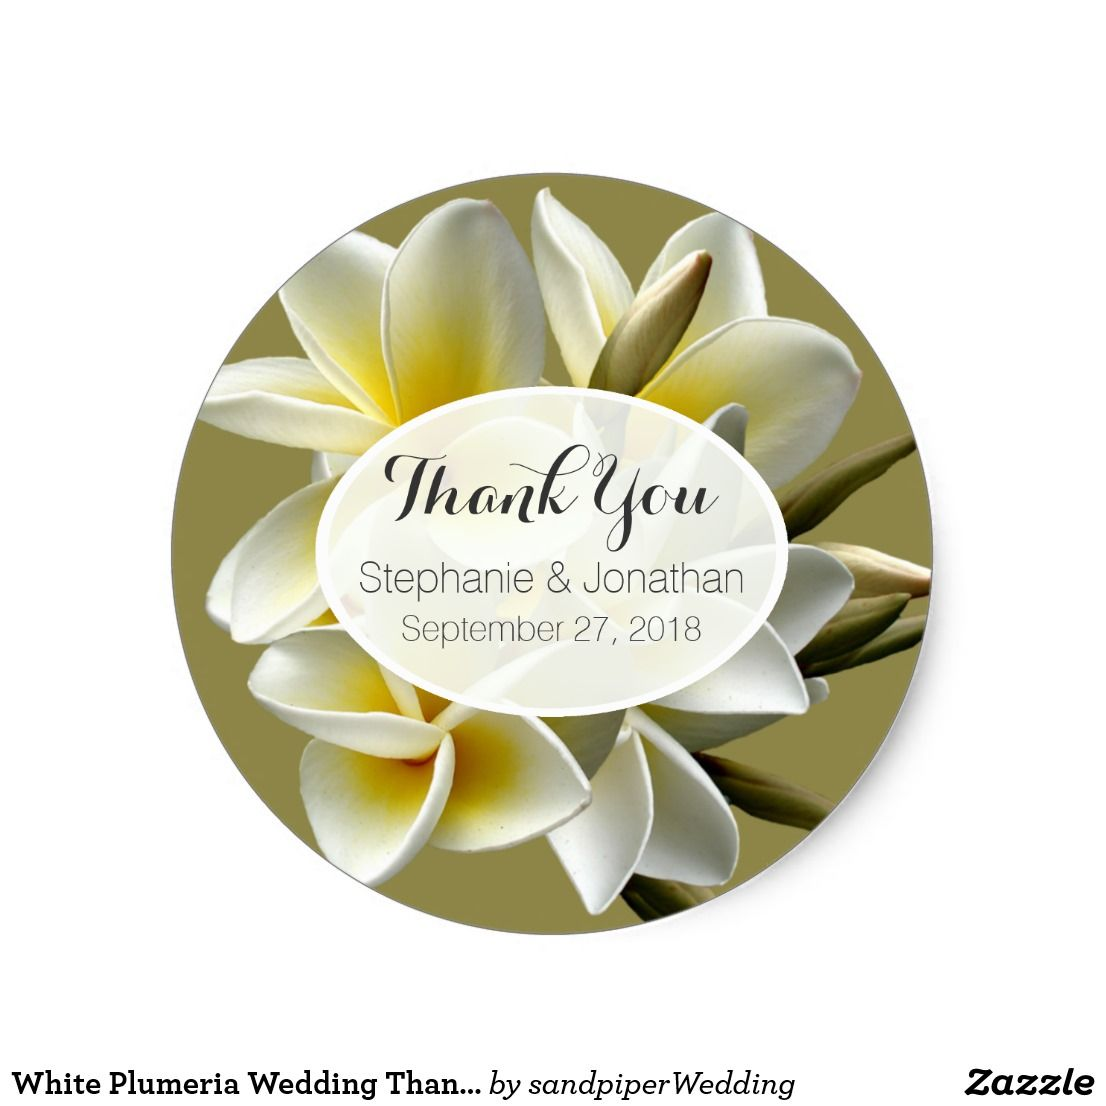 White Plumeria Wedding Thank You Favor Stickers | Favors and Wedding